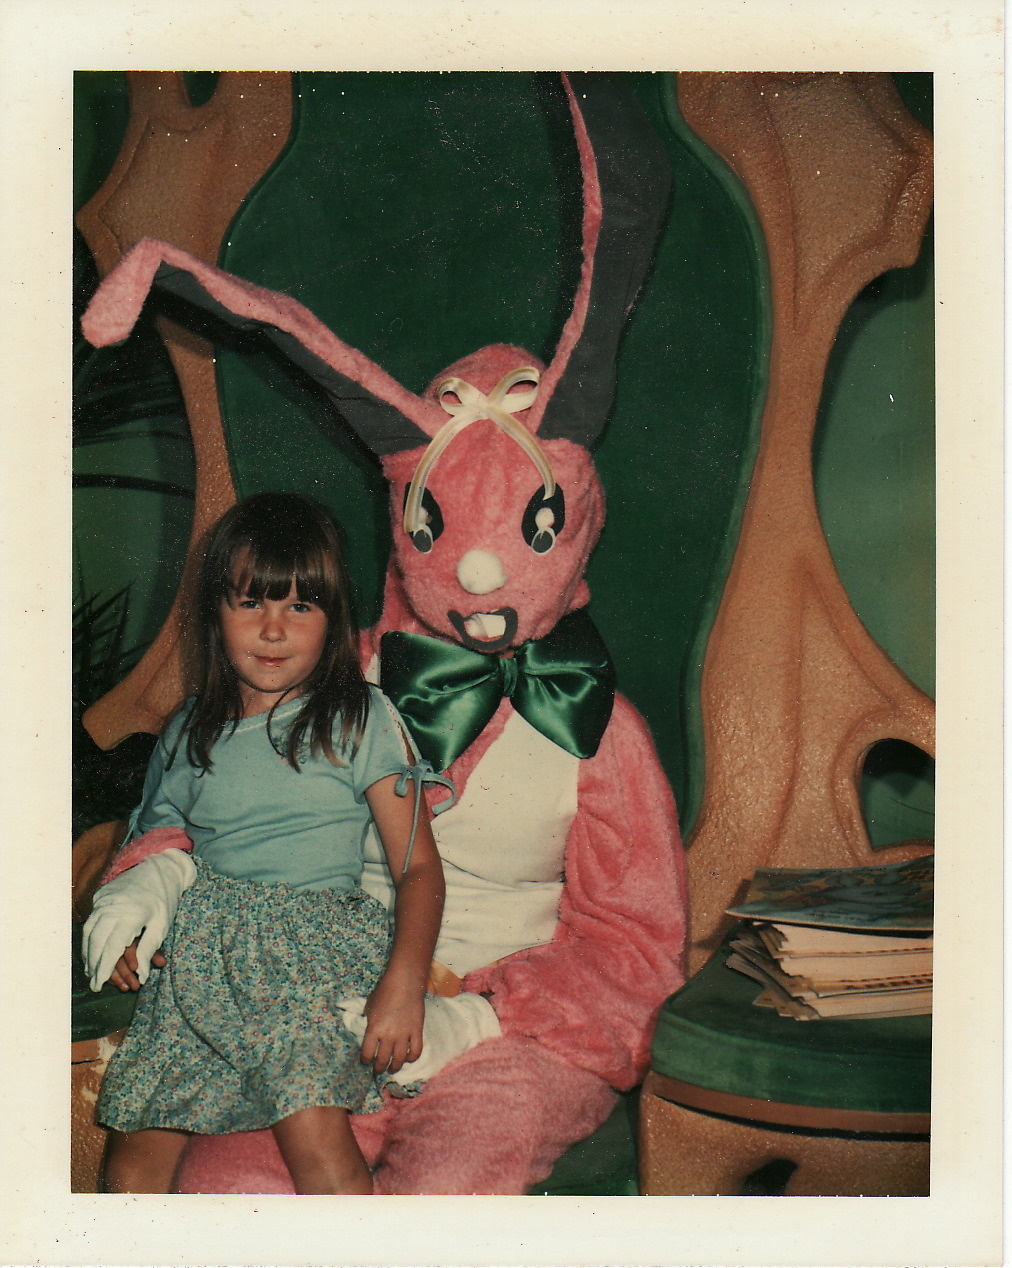 Scary Easter Bunny Photos 1980 yellow easter bunny scary